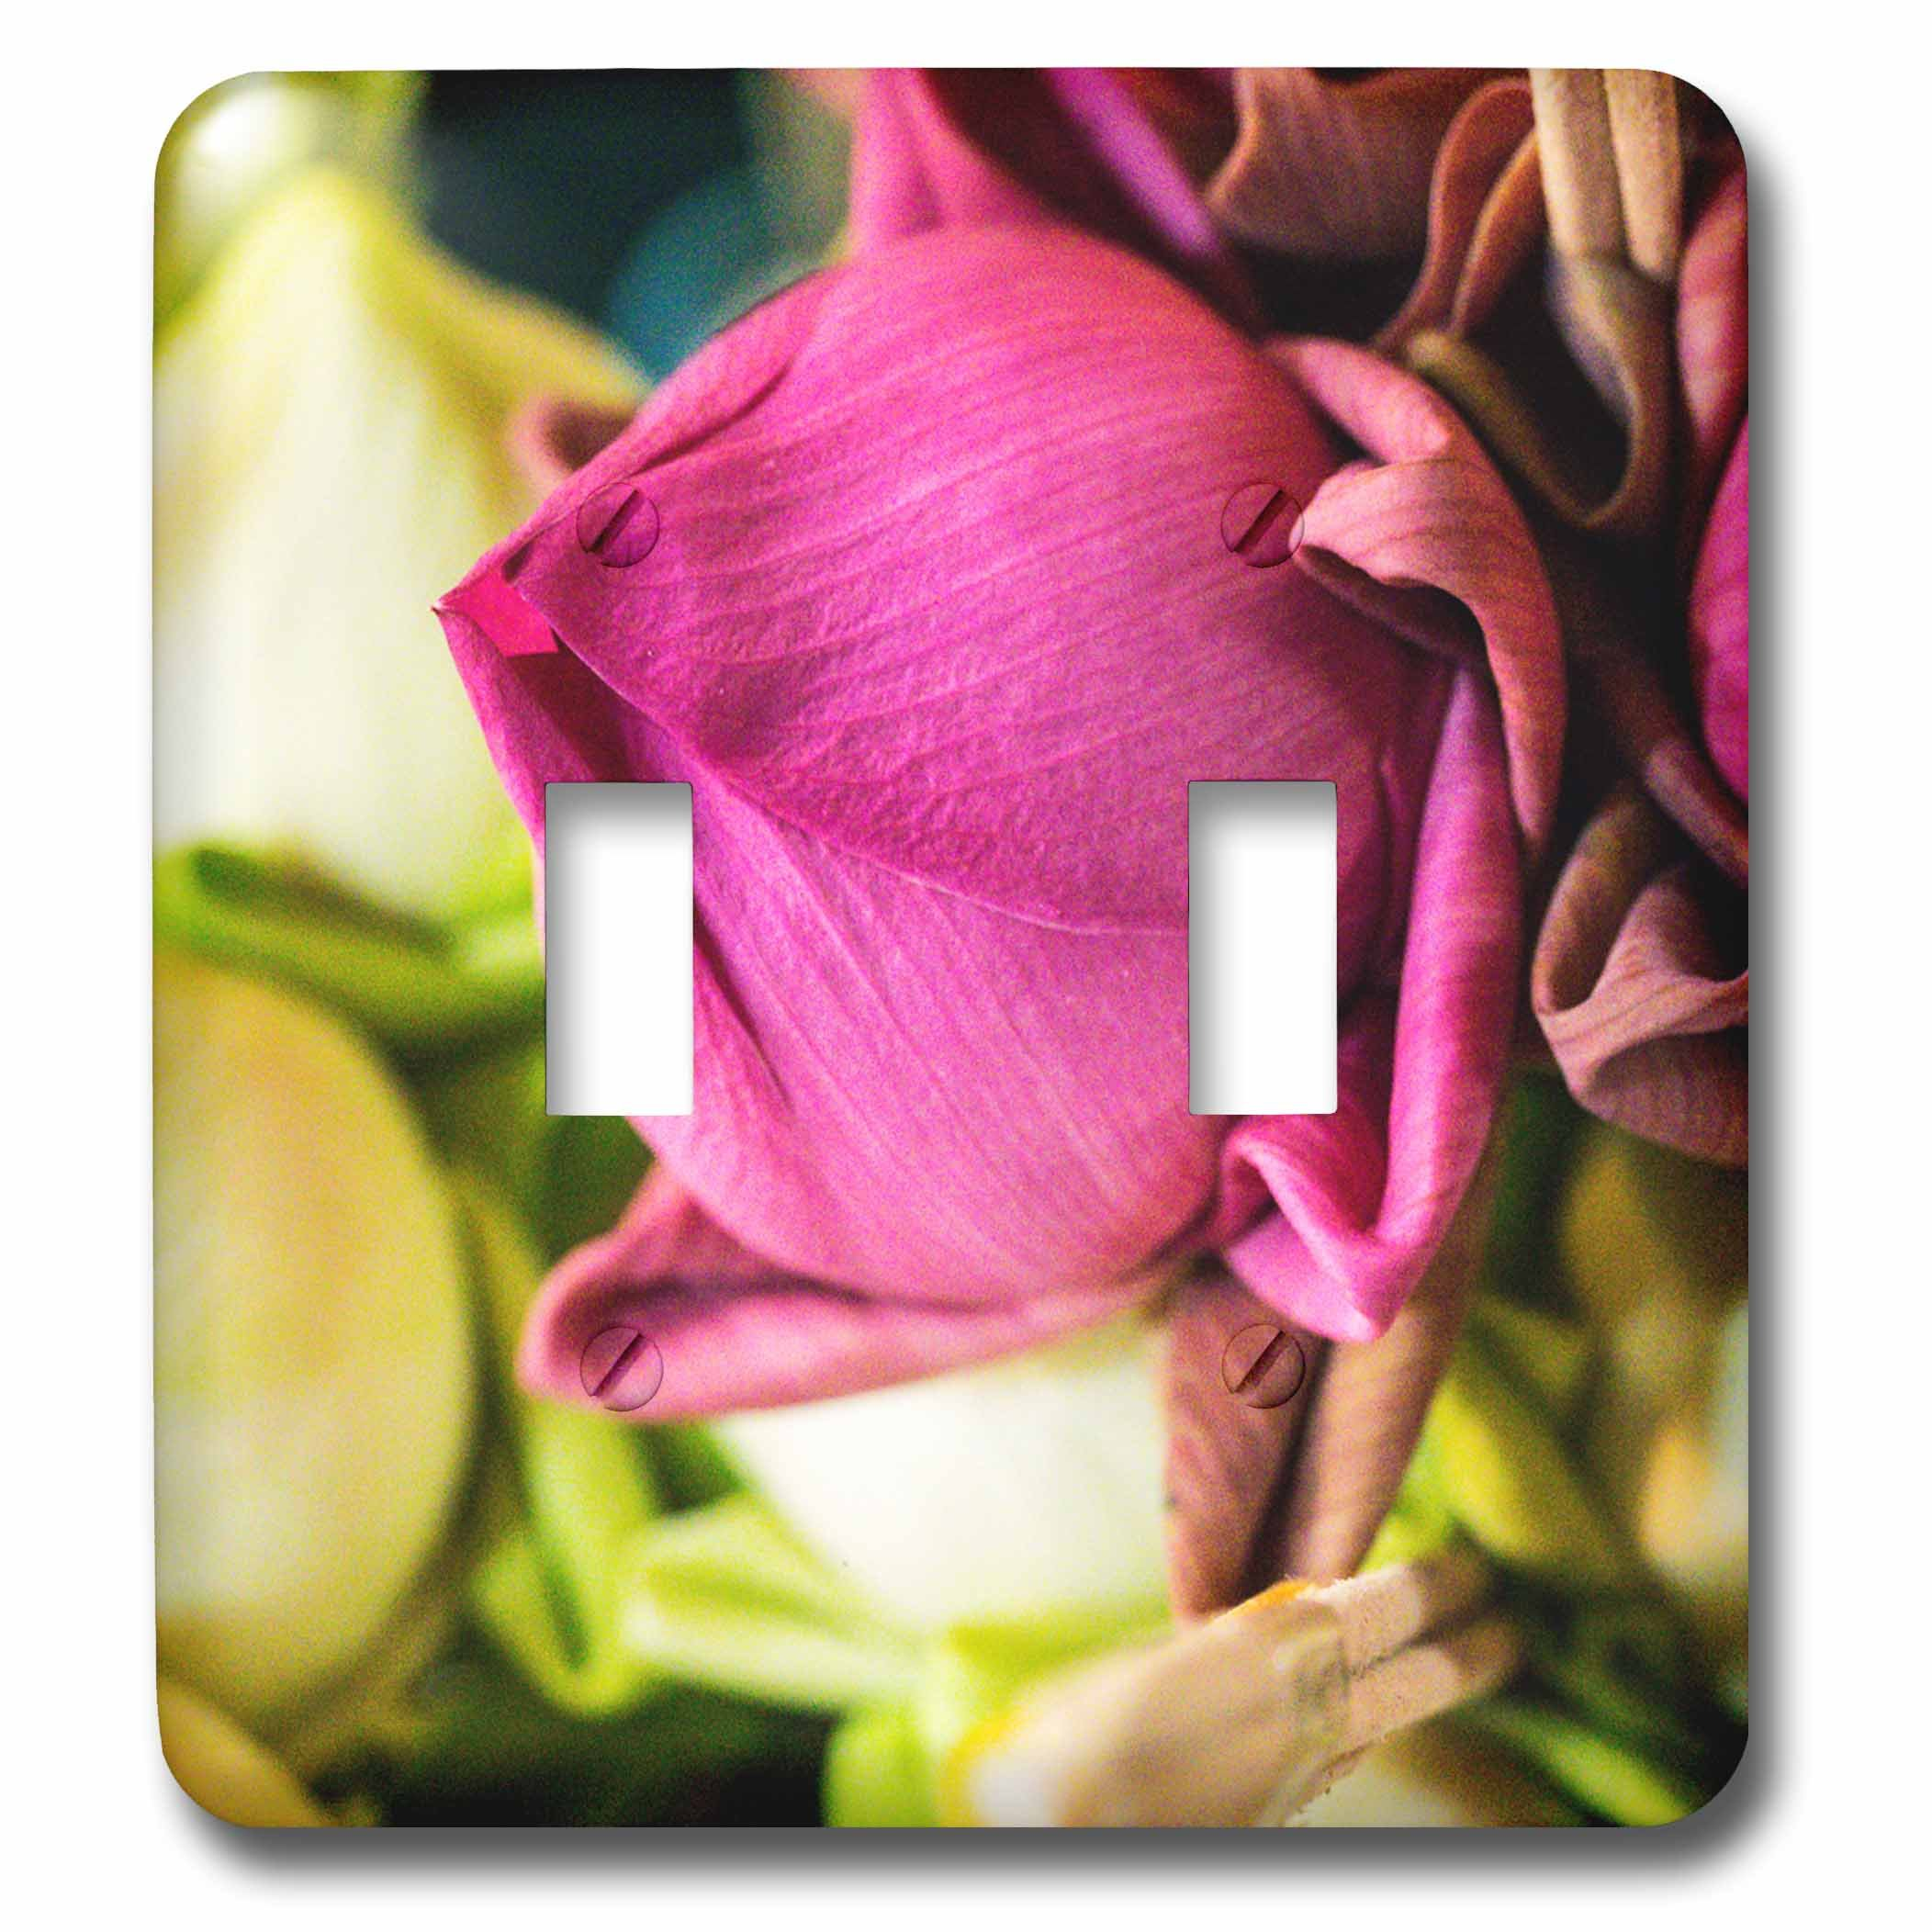 3dRose Danita Delimont - Flowers - Thailand, Chiang Mai, Flowers at the Thai Market Place - Light Switch Covers - double toggle switch (lsp_276974_2) by 3dRose